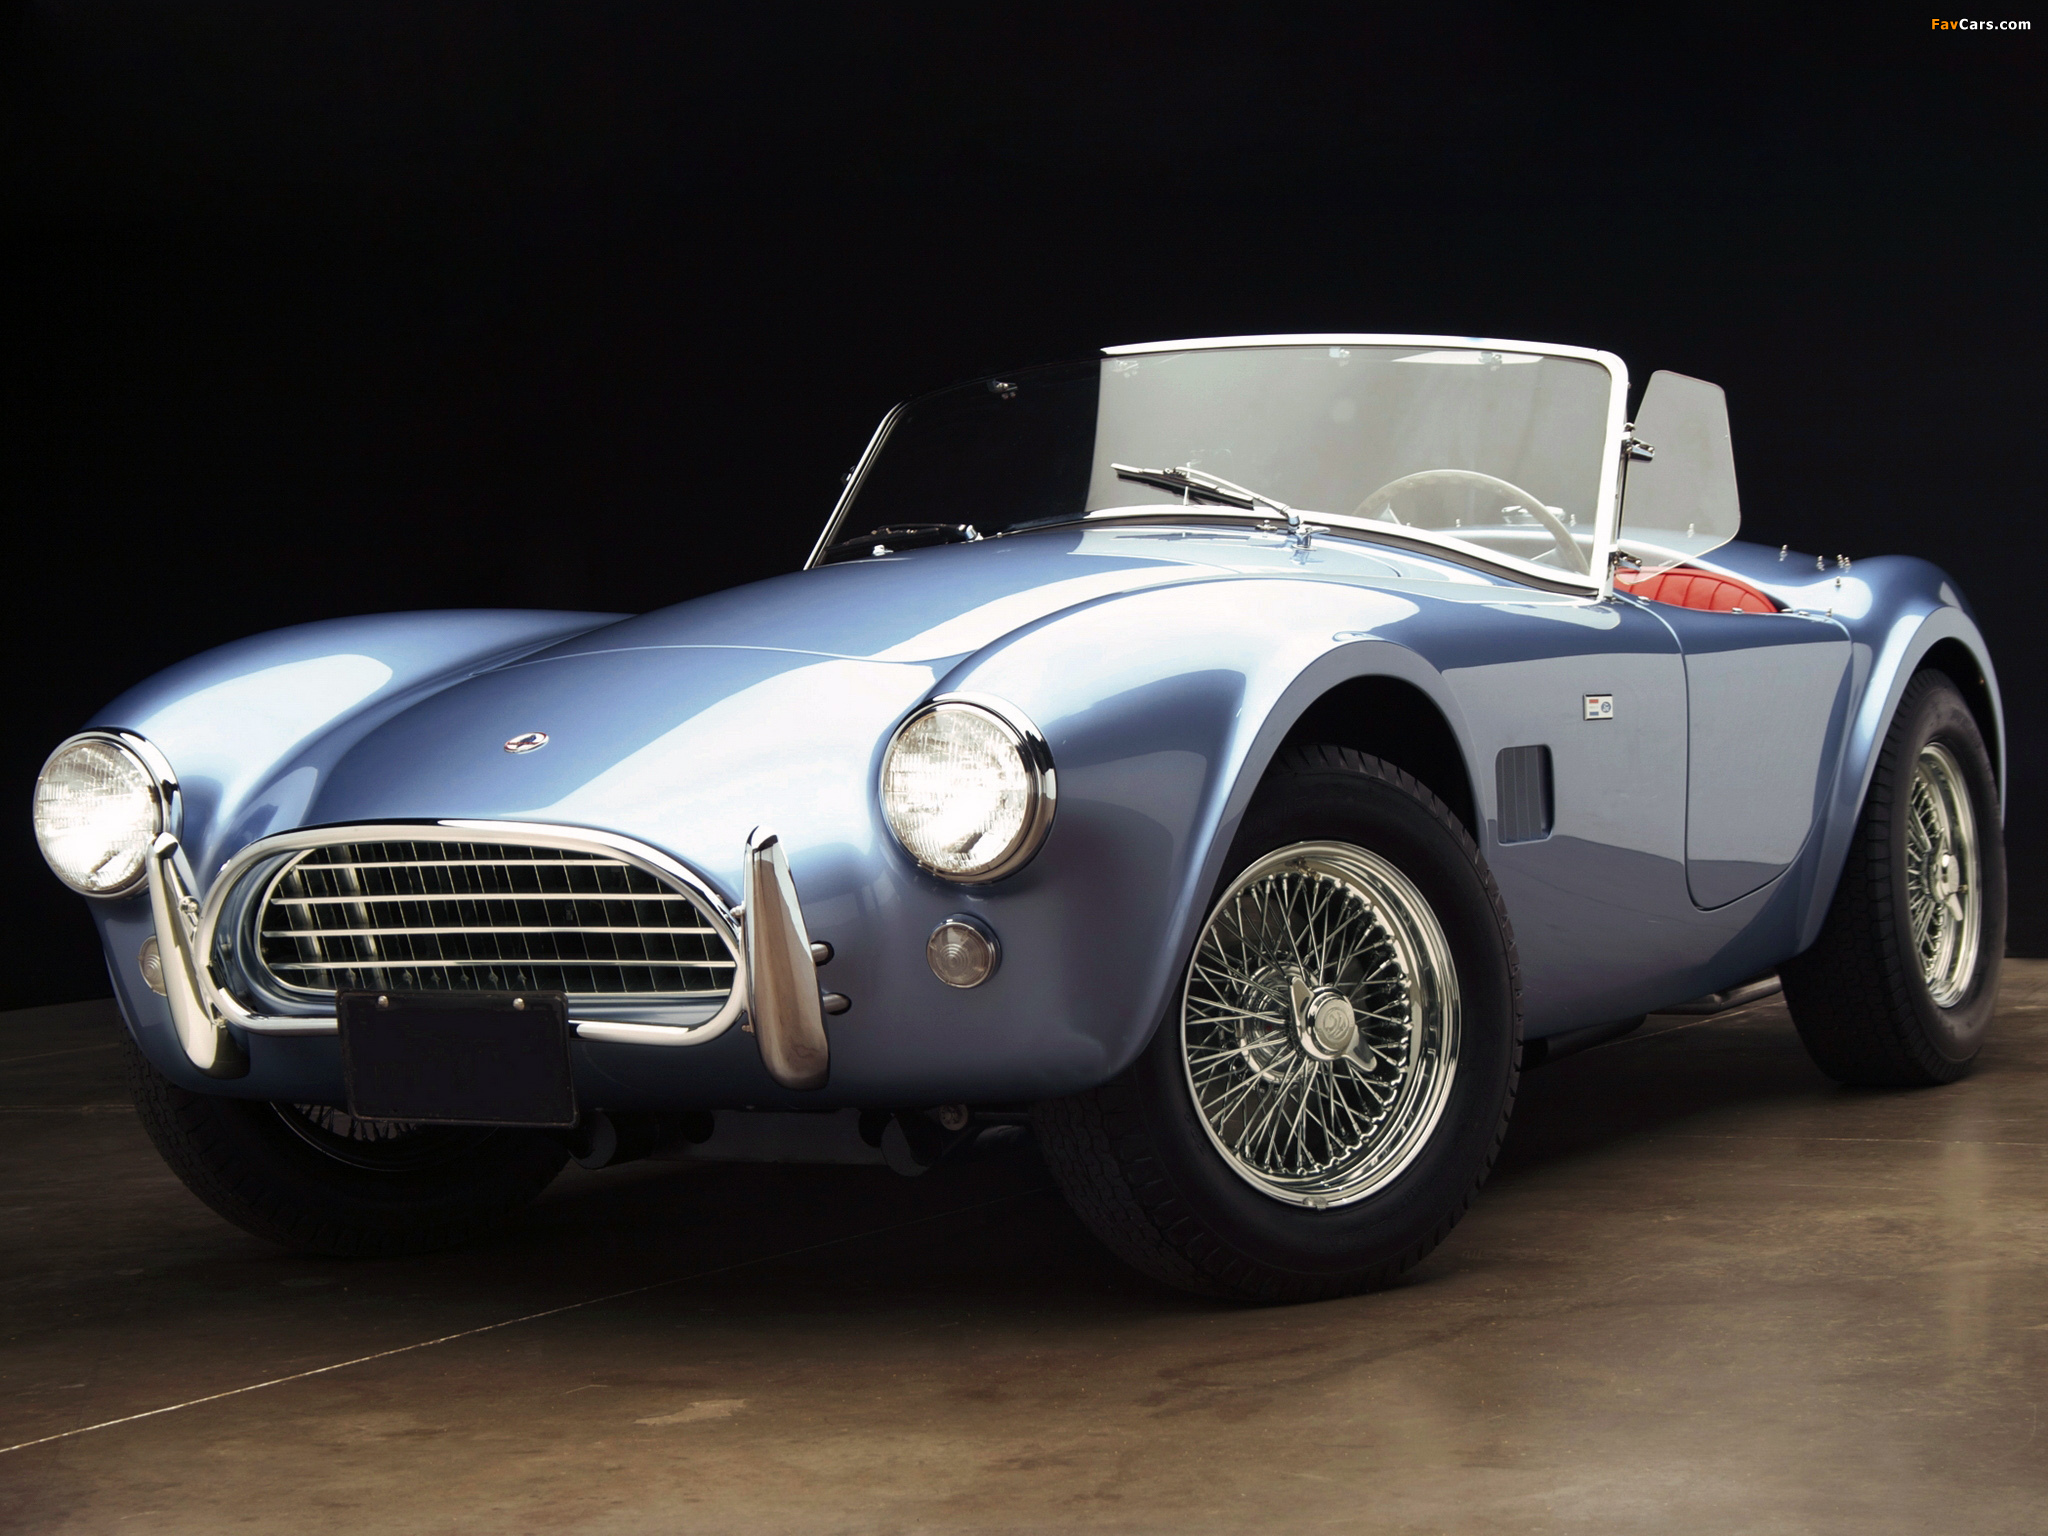 Original AC Cobra